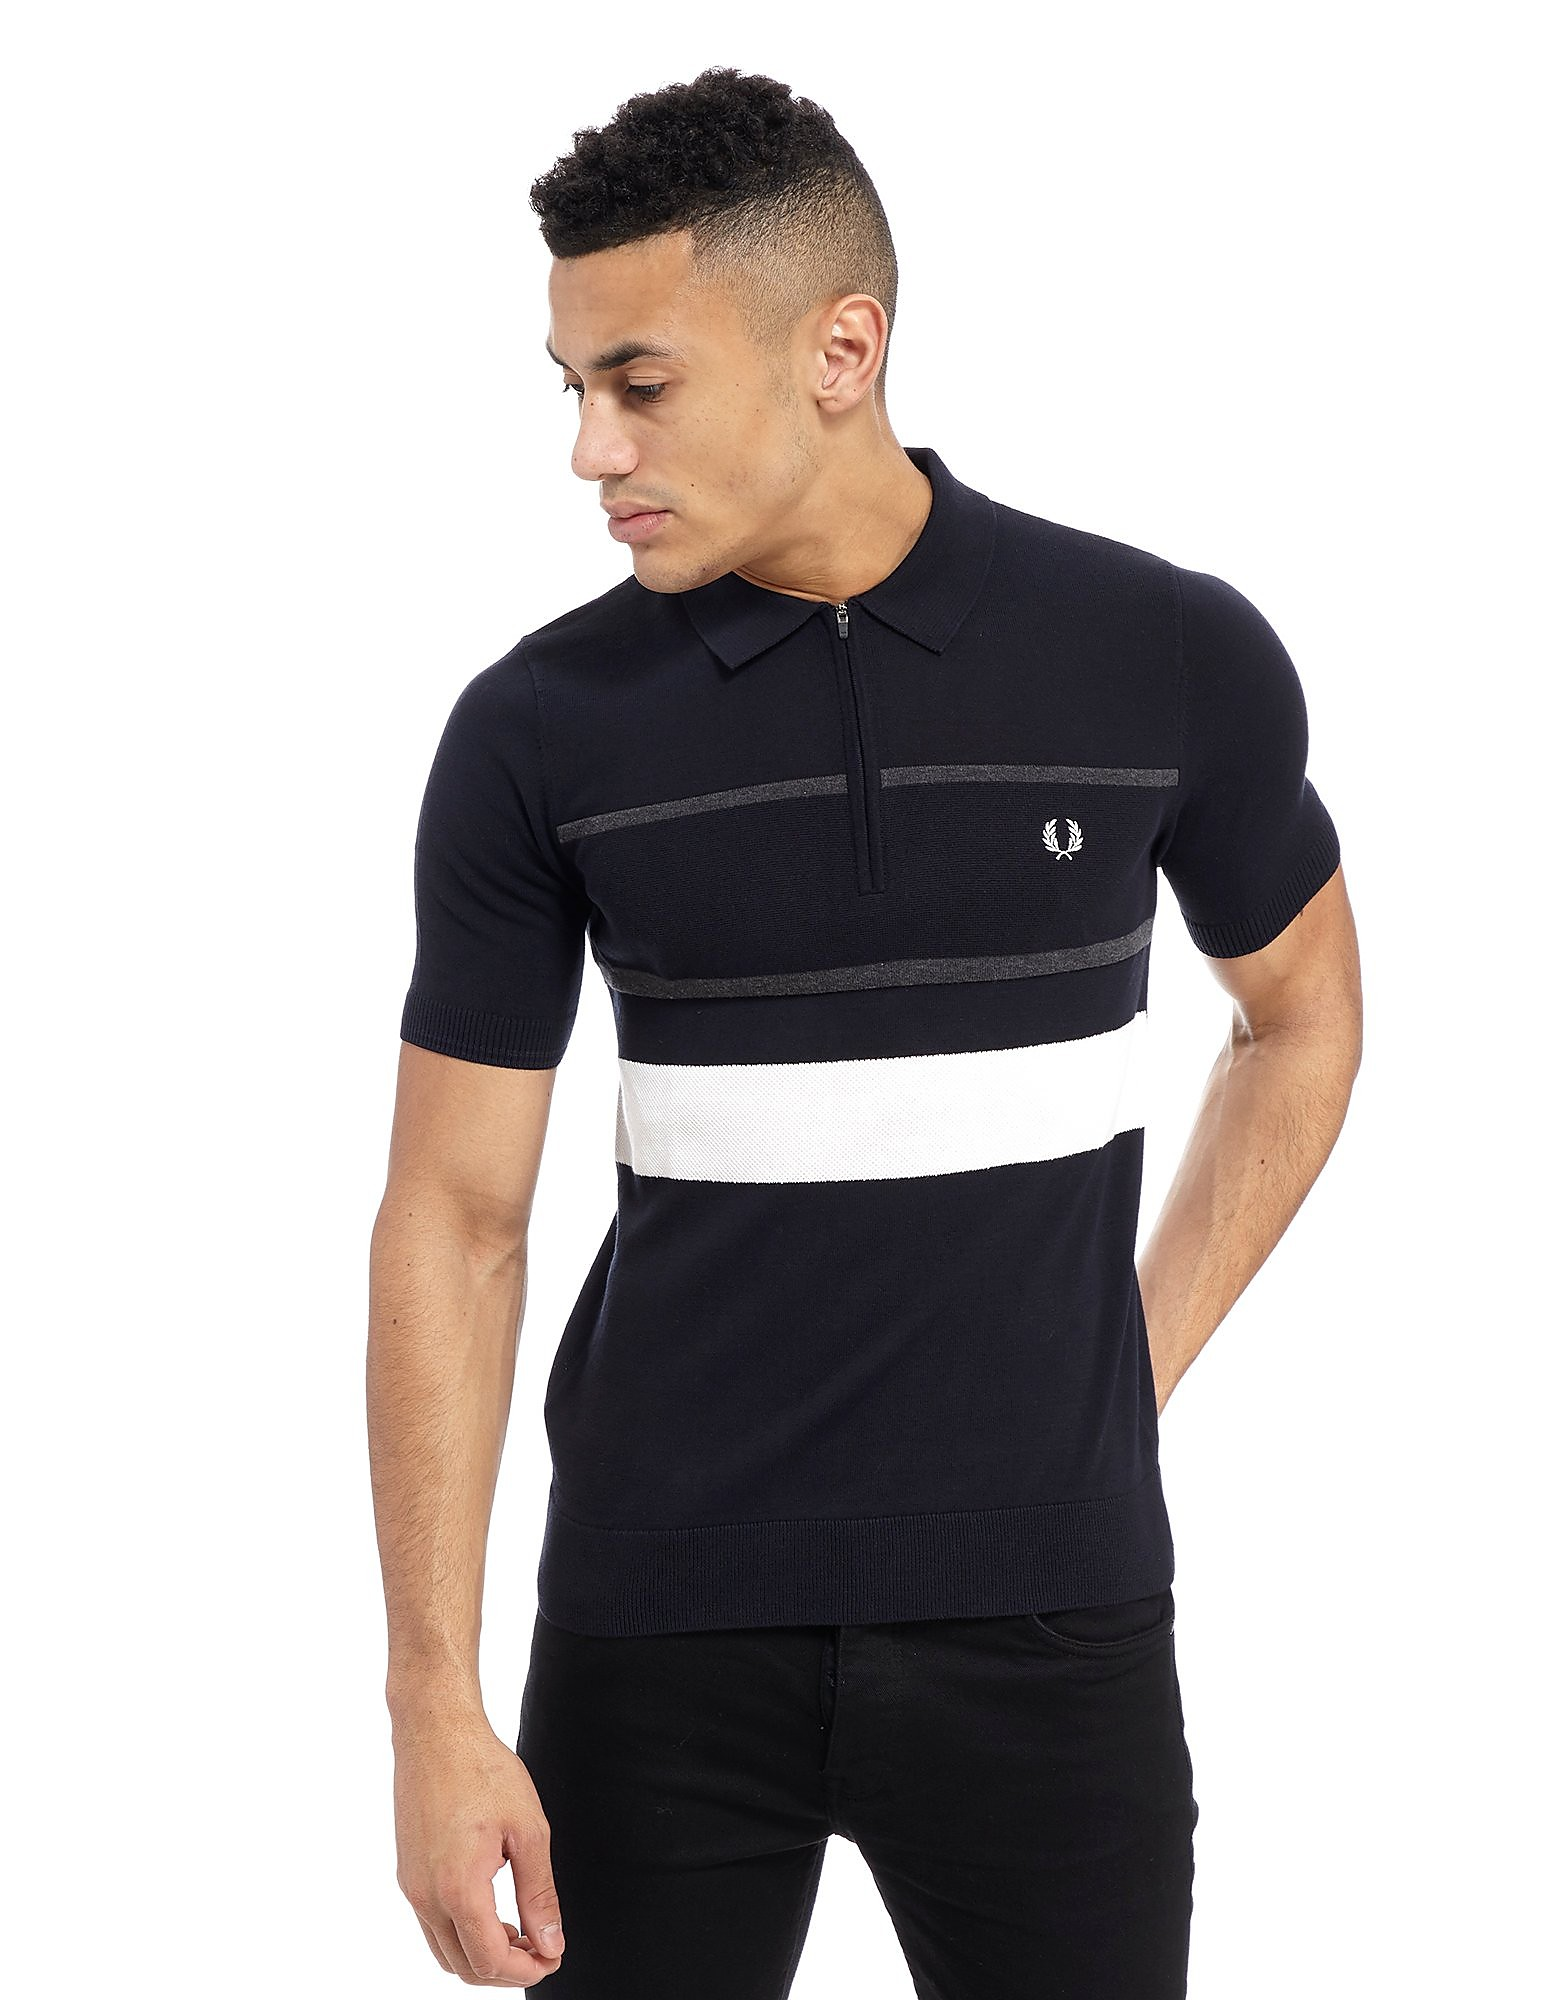 Fred Perry Textured Knit Zip Neck Polo Shirt